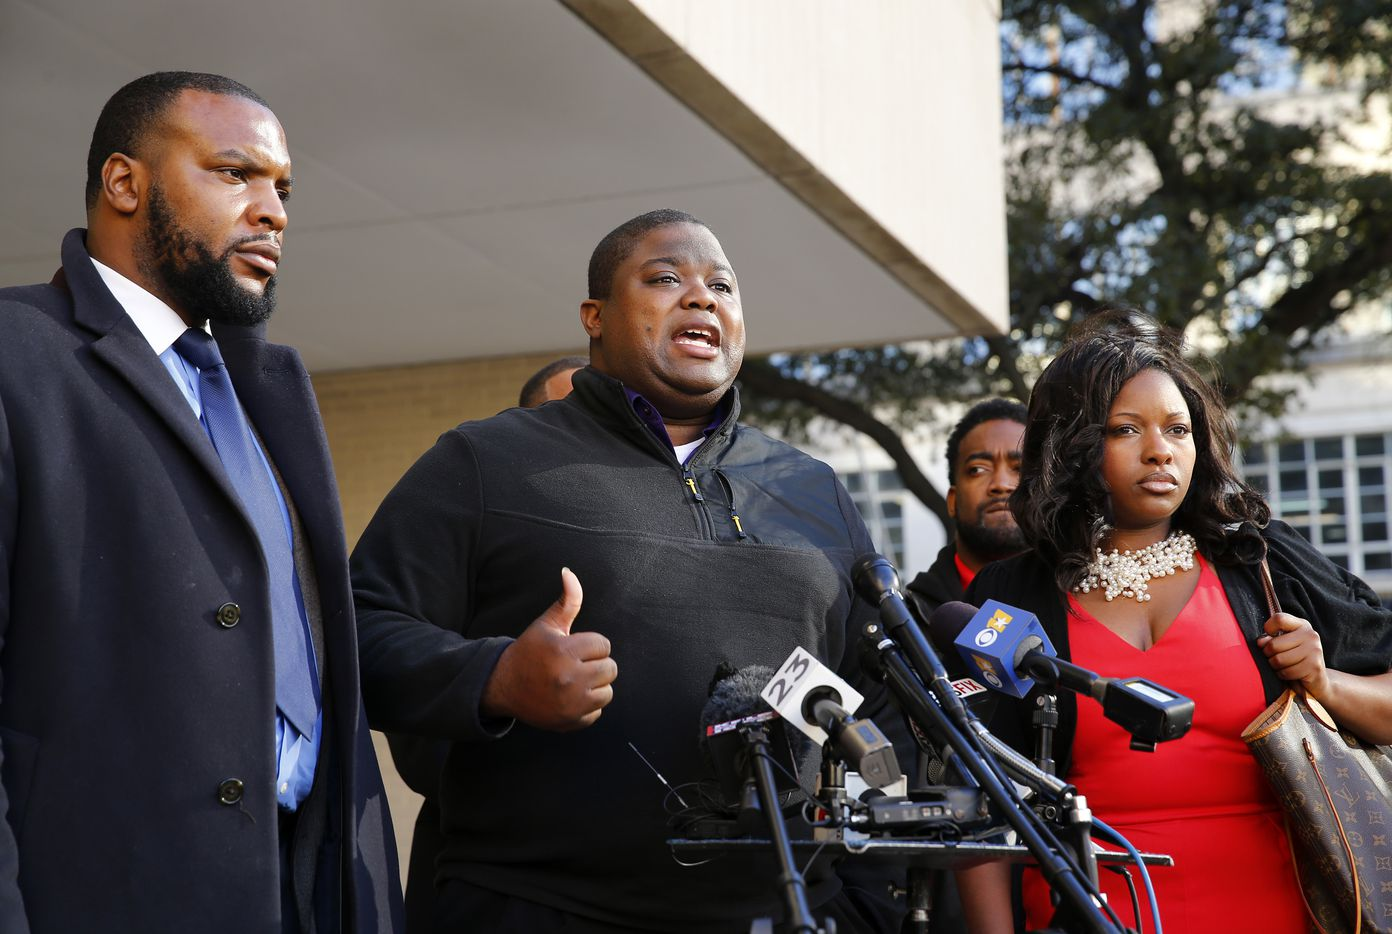 Rod Smith, Jacqueline Craig's cousin, speaks during a news conference outside Fort Worth City Hall on Monday. (Tom Fox/Staff Photographer)